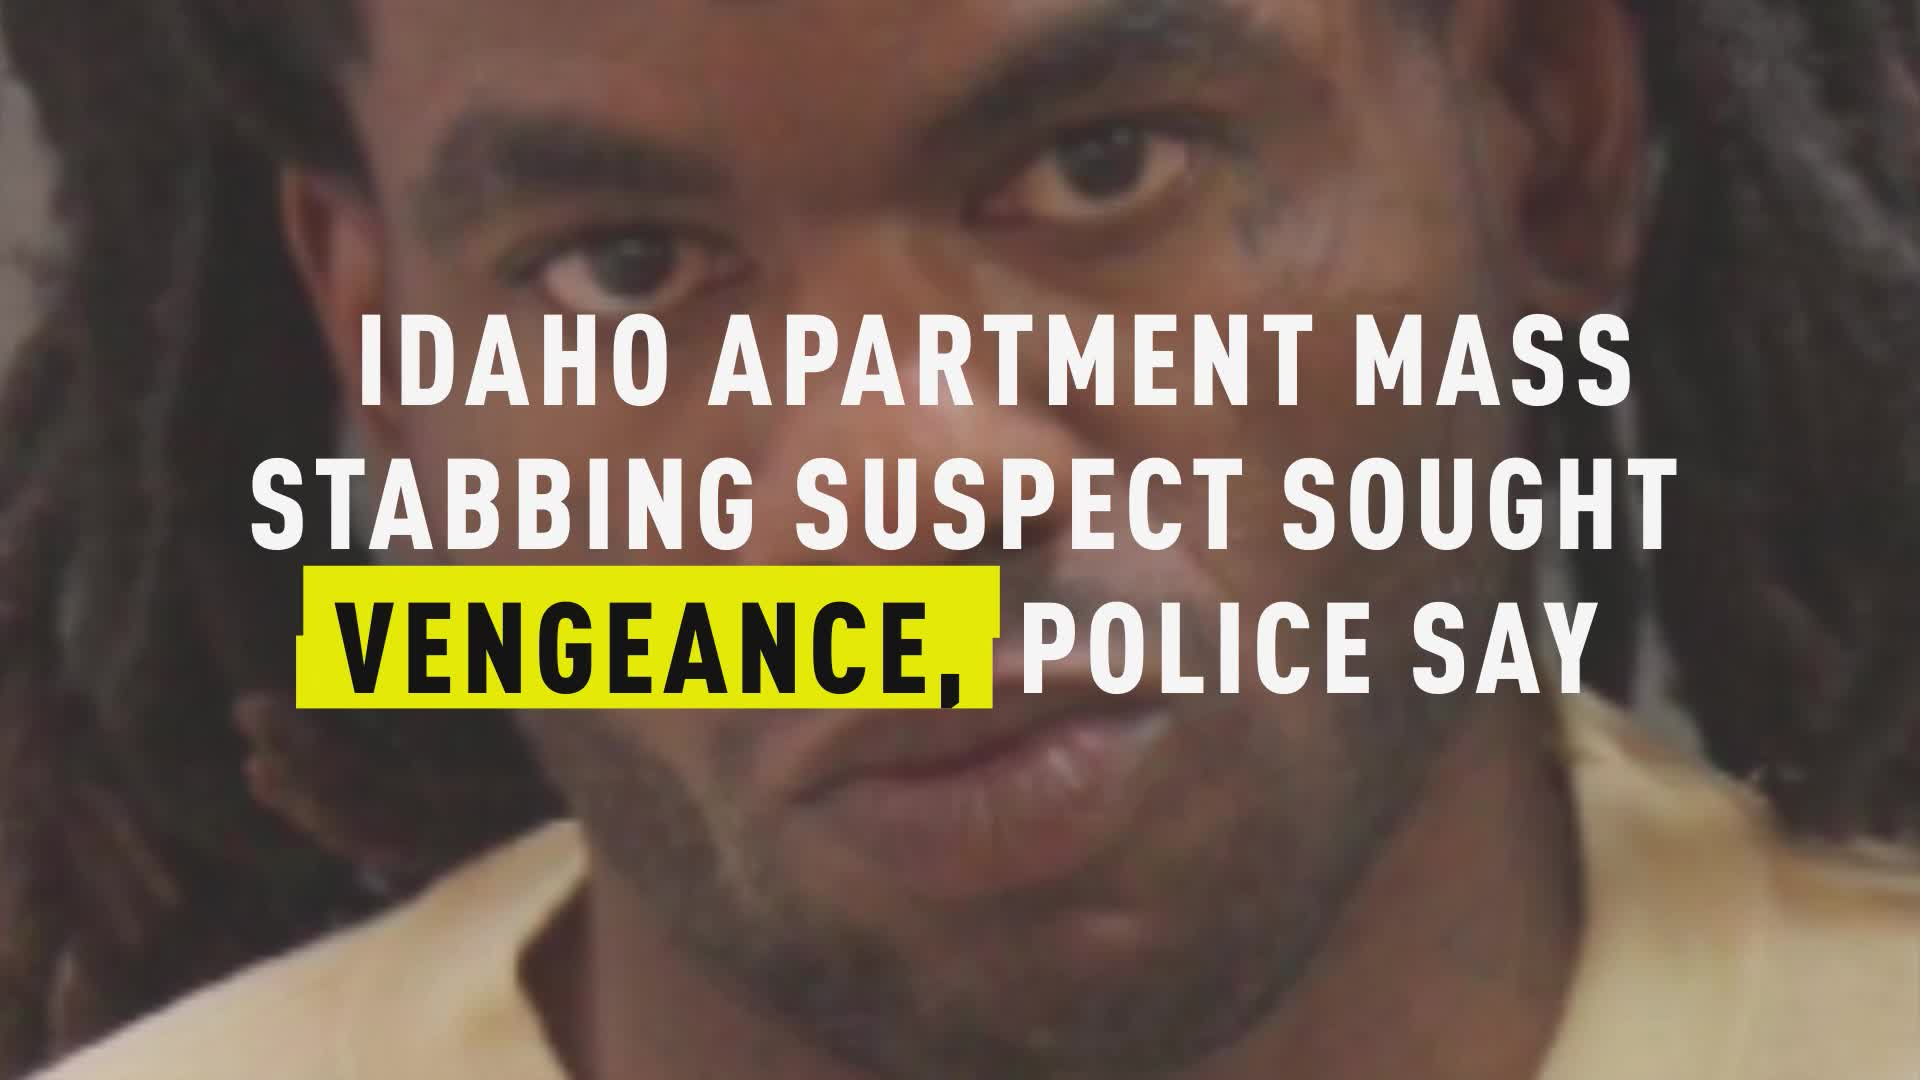 Idaho Apartment Mass Stabbing Suspect Sought Vengeance, Police Say